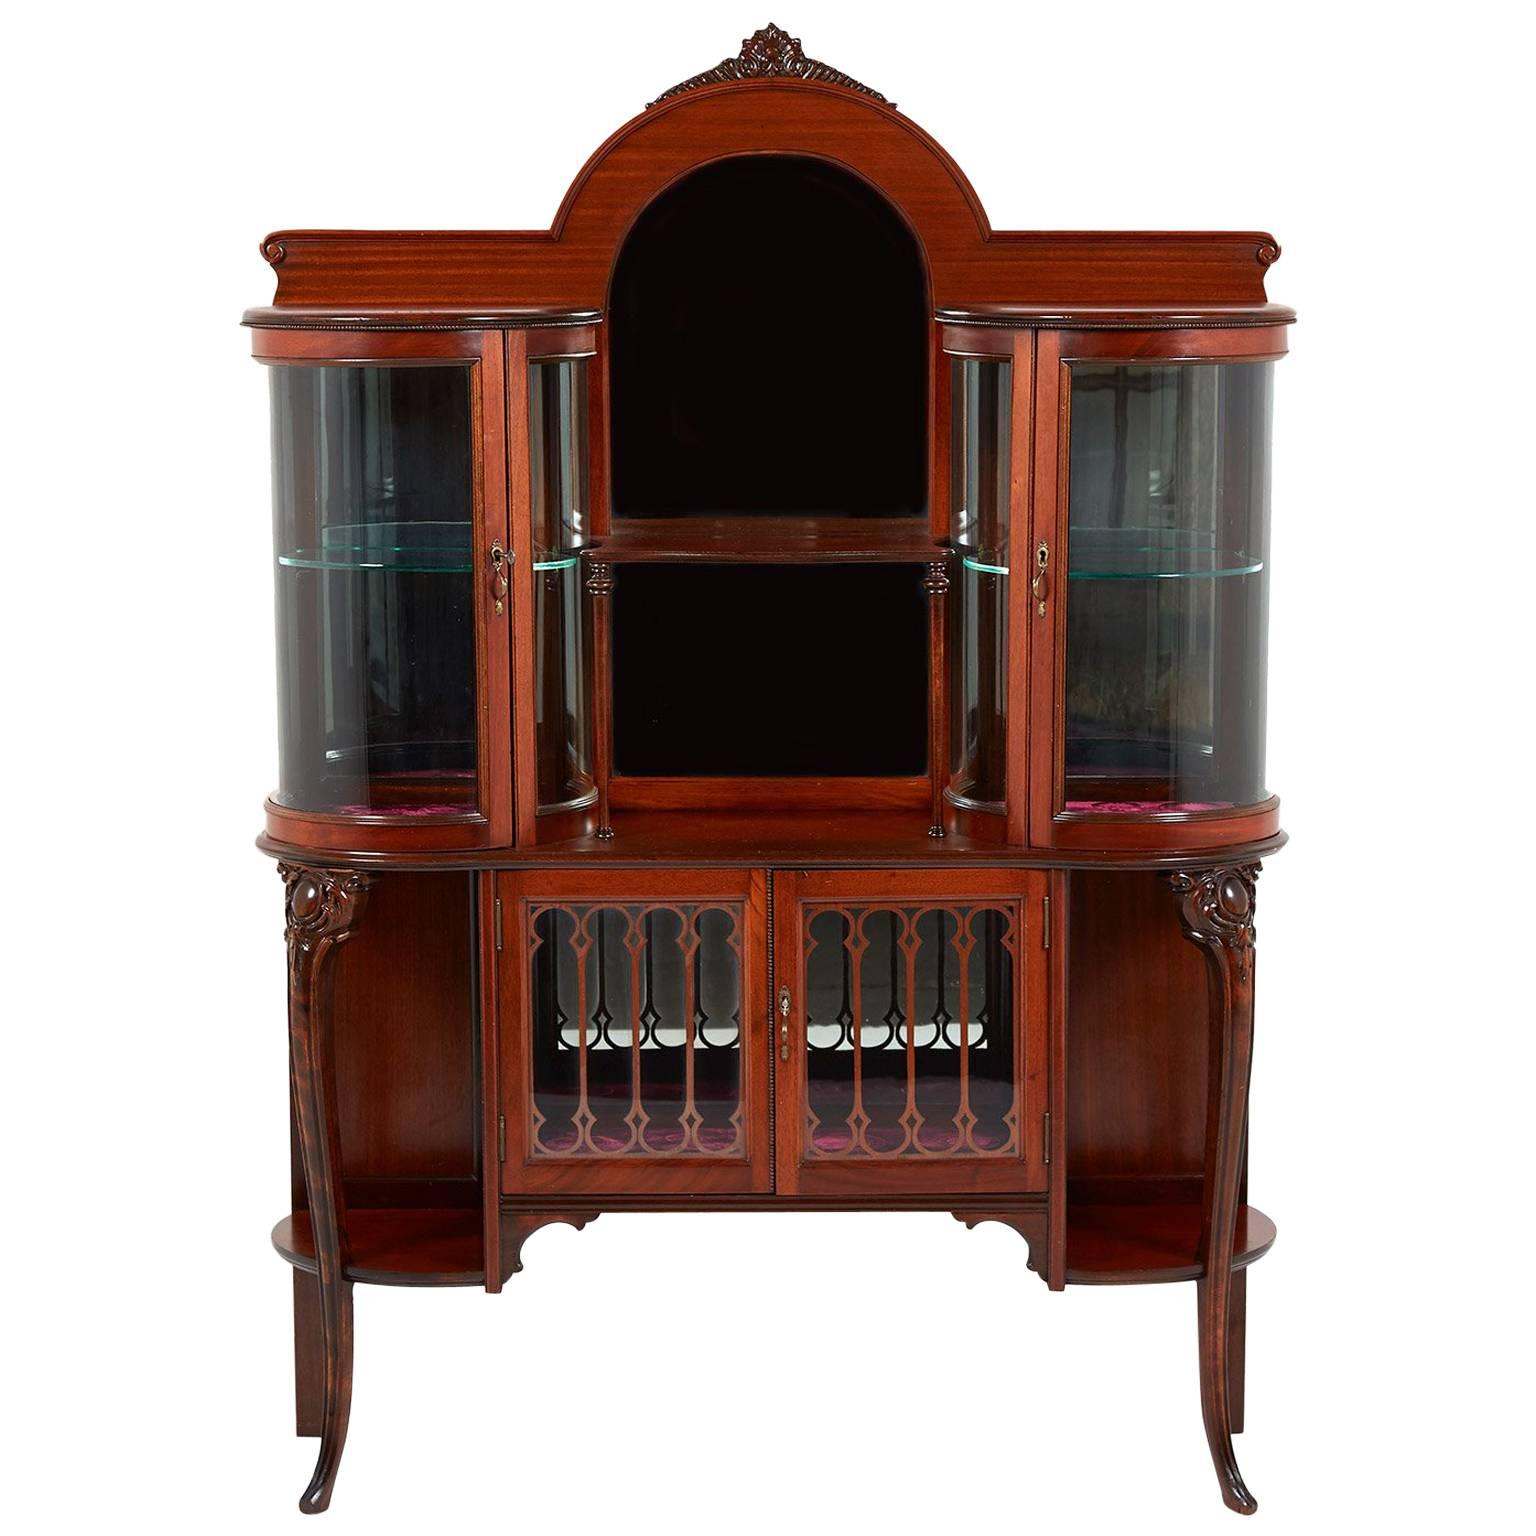 Curved Glass Display Cabinets - 19 For Sale on 1stdibs